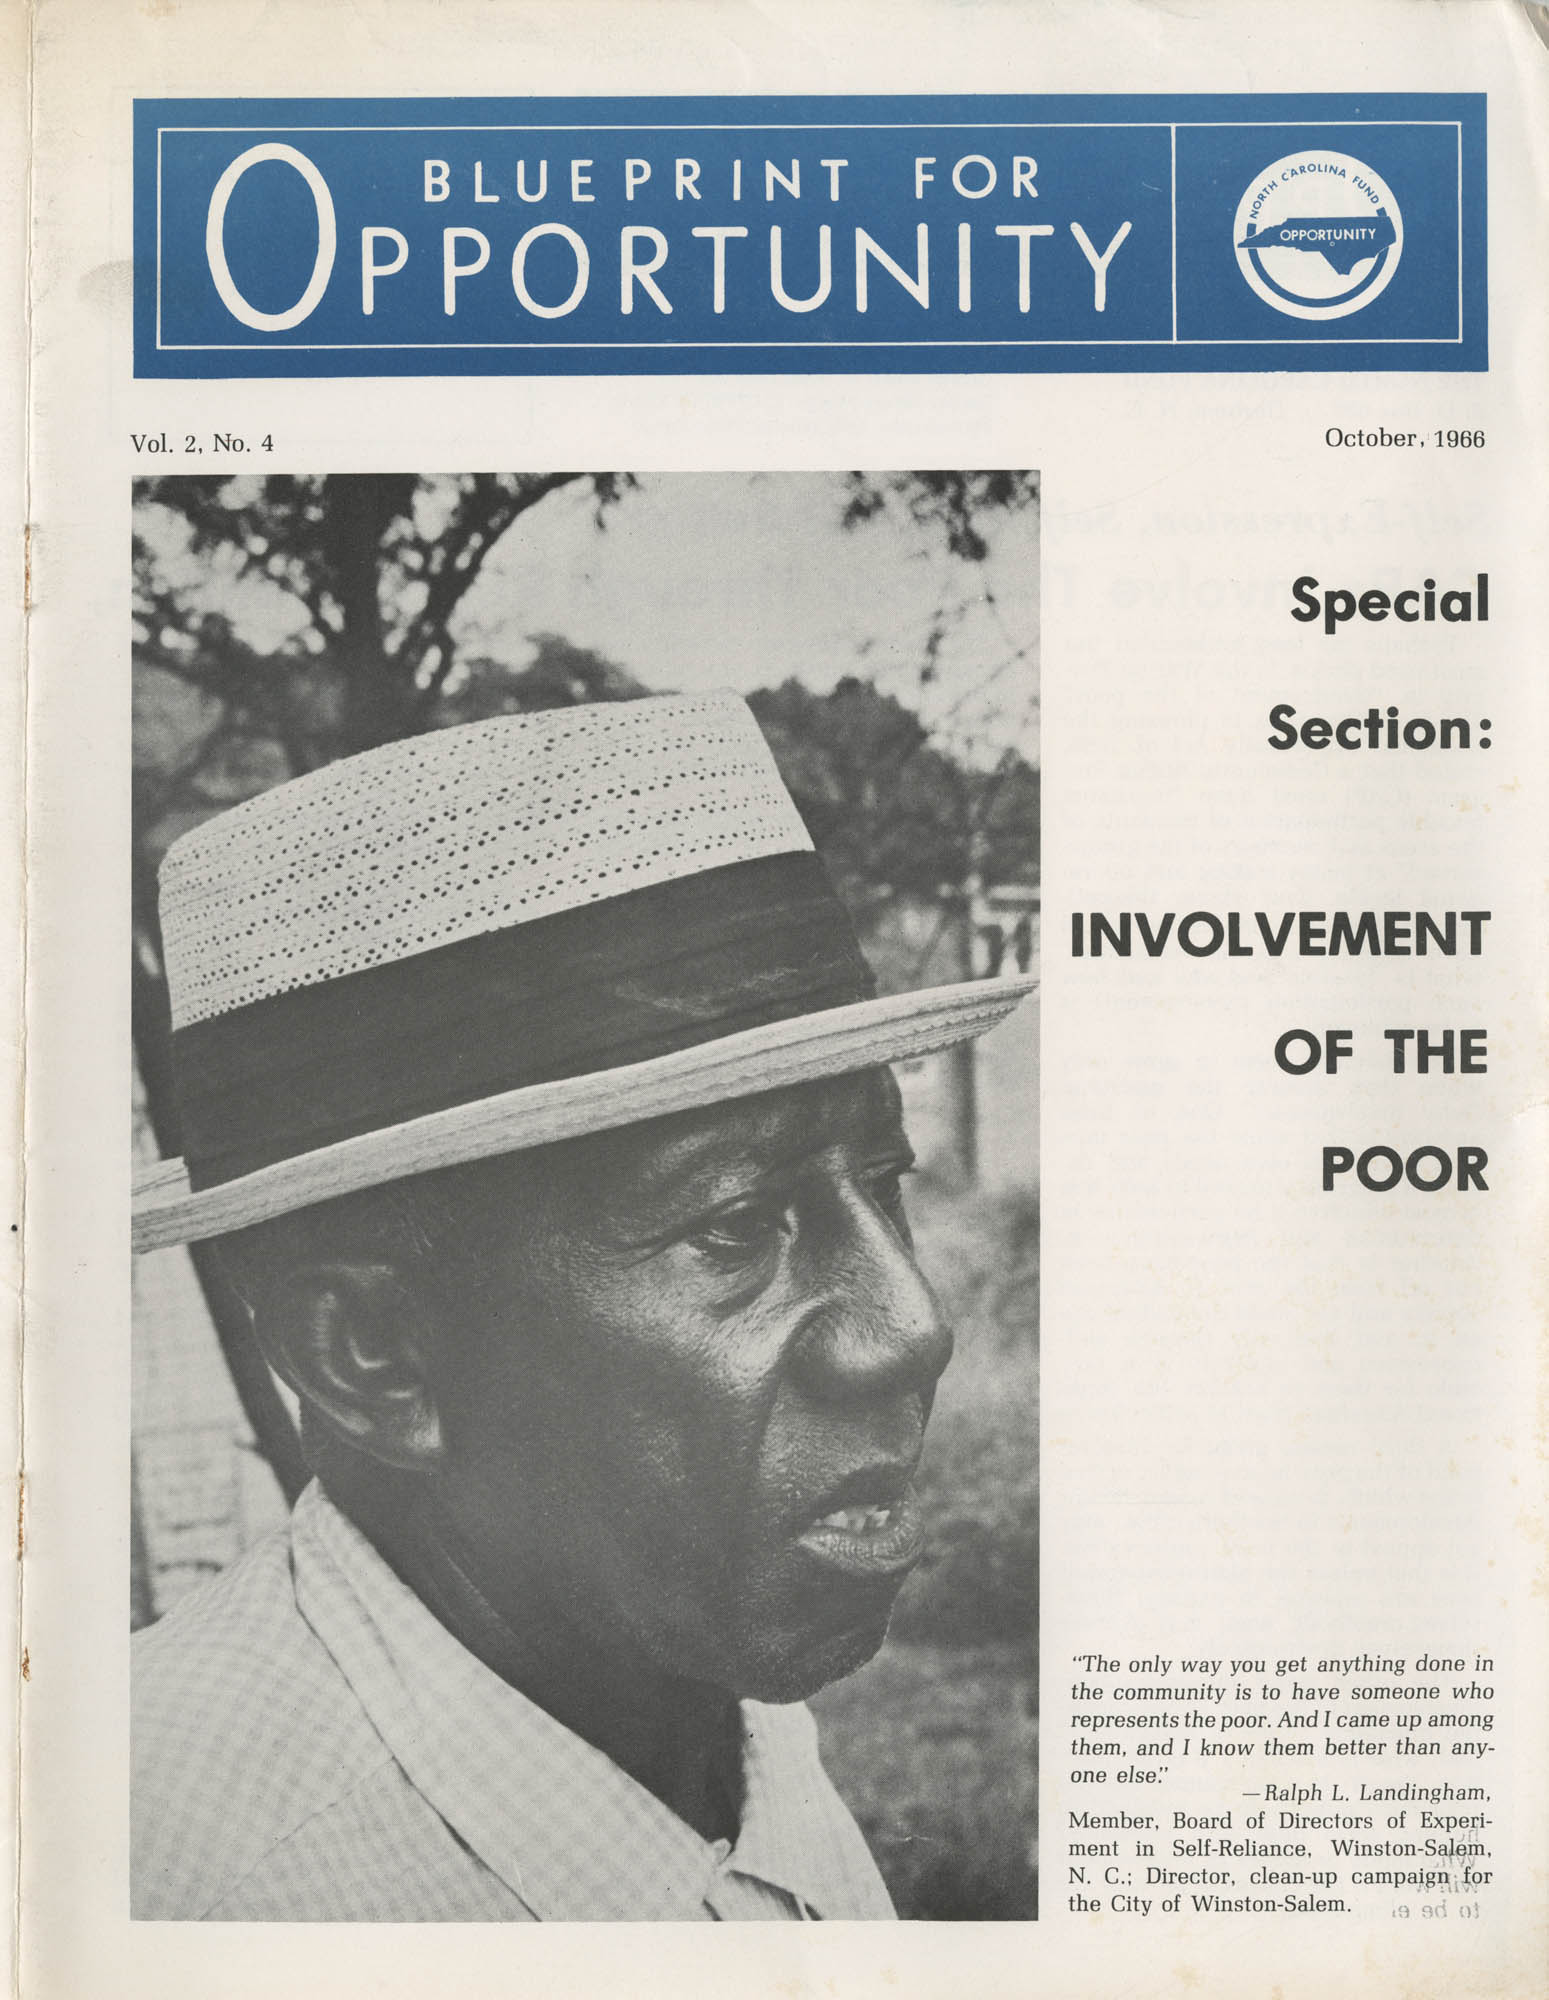 Blueprint for Opportunity, Vol. 2, No. 4, Front Cover